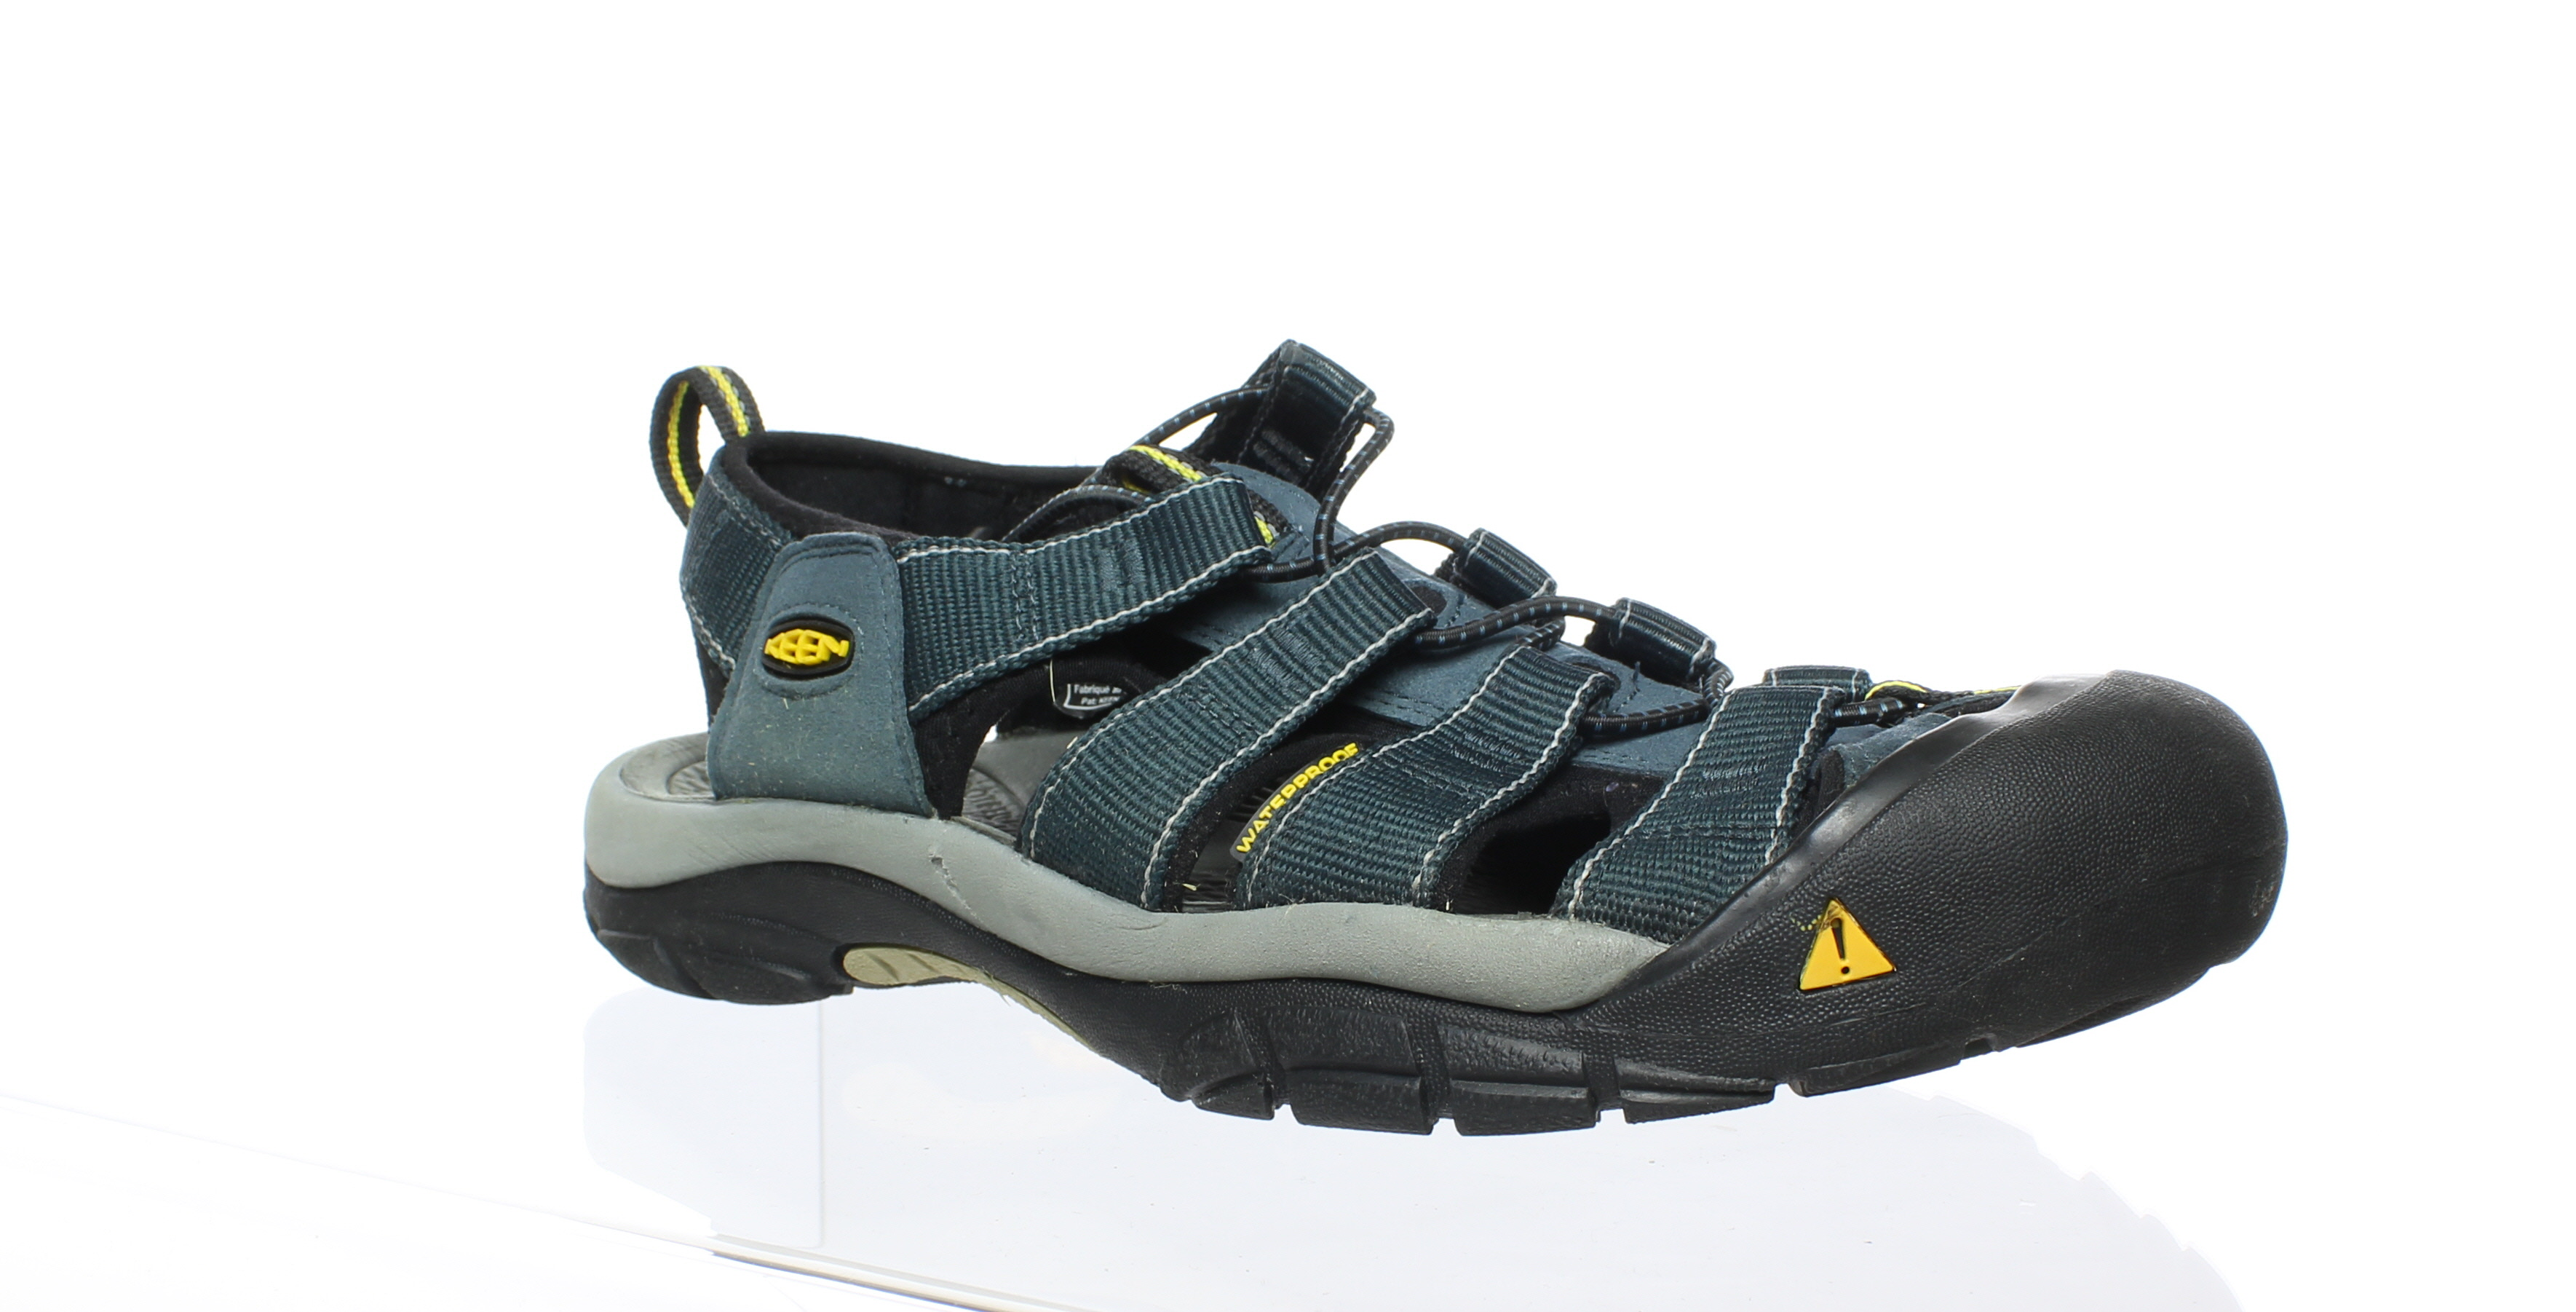 e4e4779ba112 KEEN Mens Newport H2 Navy Medium Grey Sport Sandals Size 9.5 (85676 ...